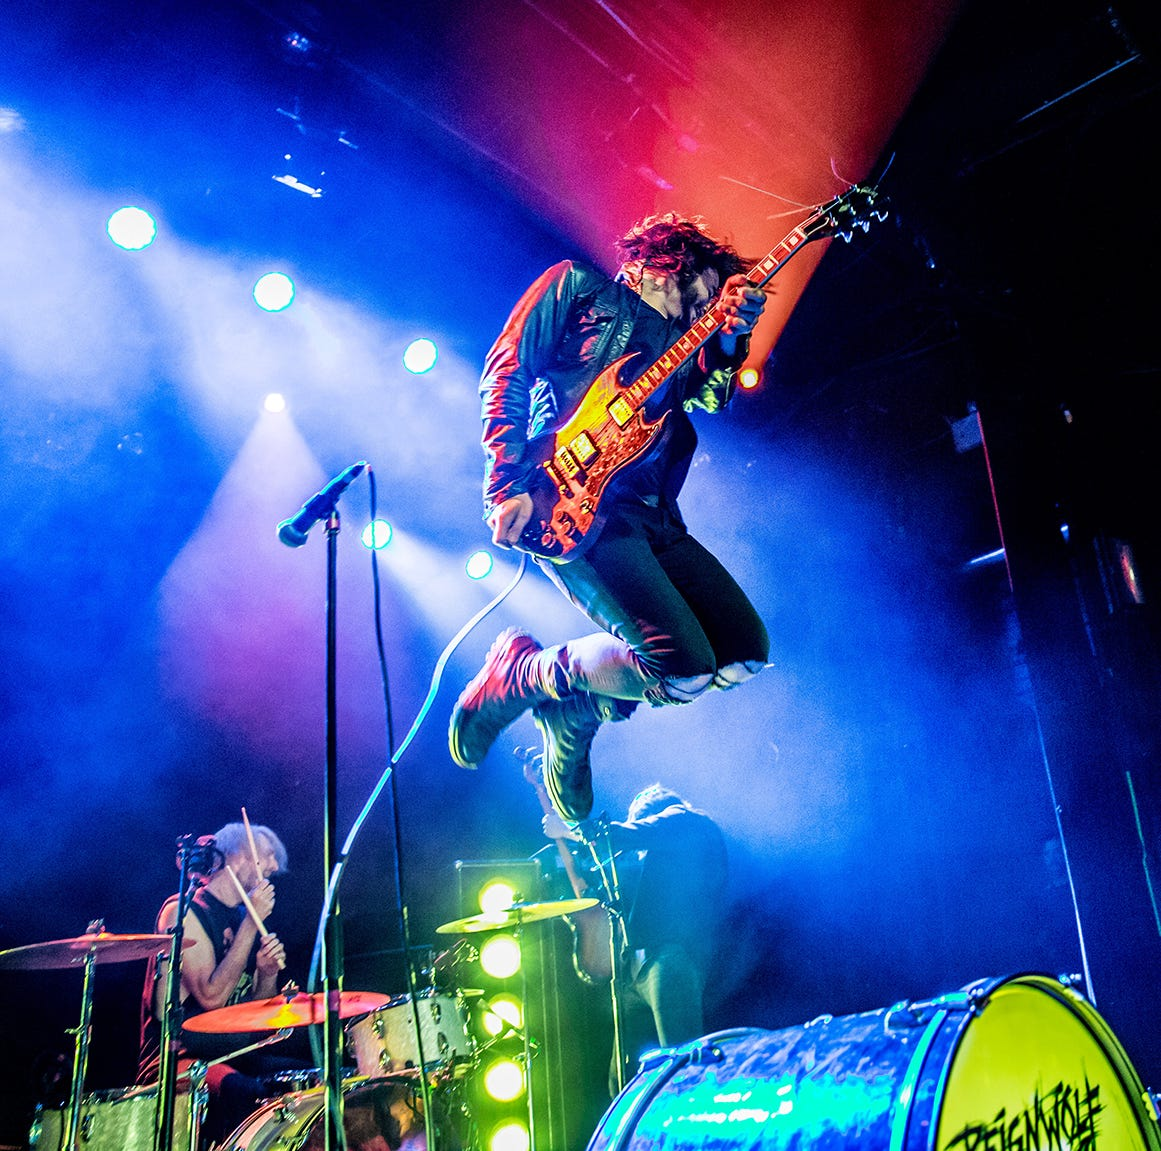 They will open for The Who. But first, Reignwolf will play in Jackson.